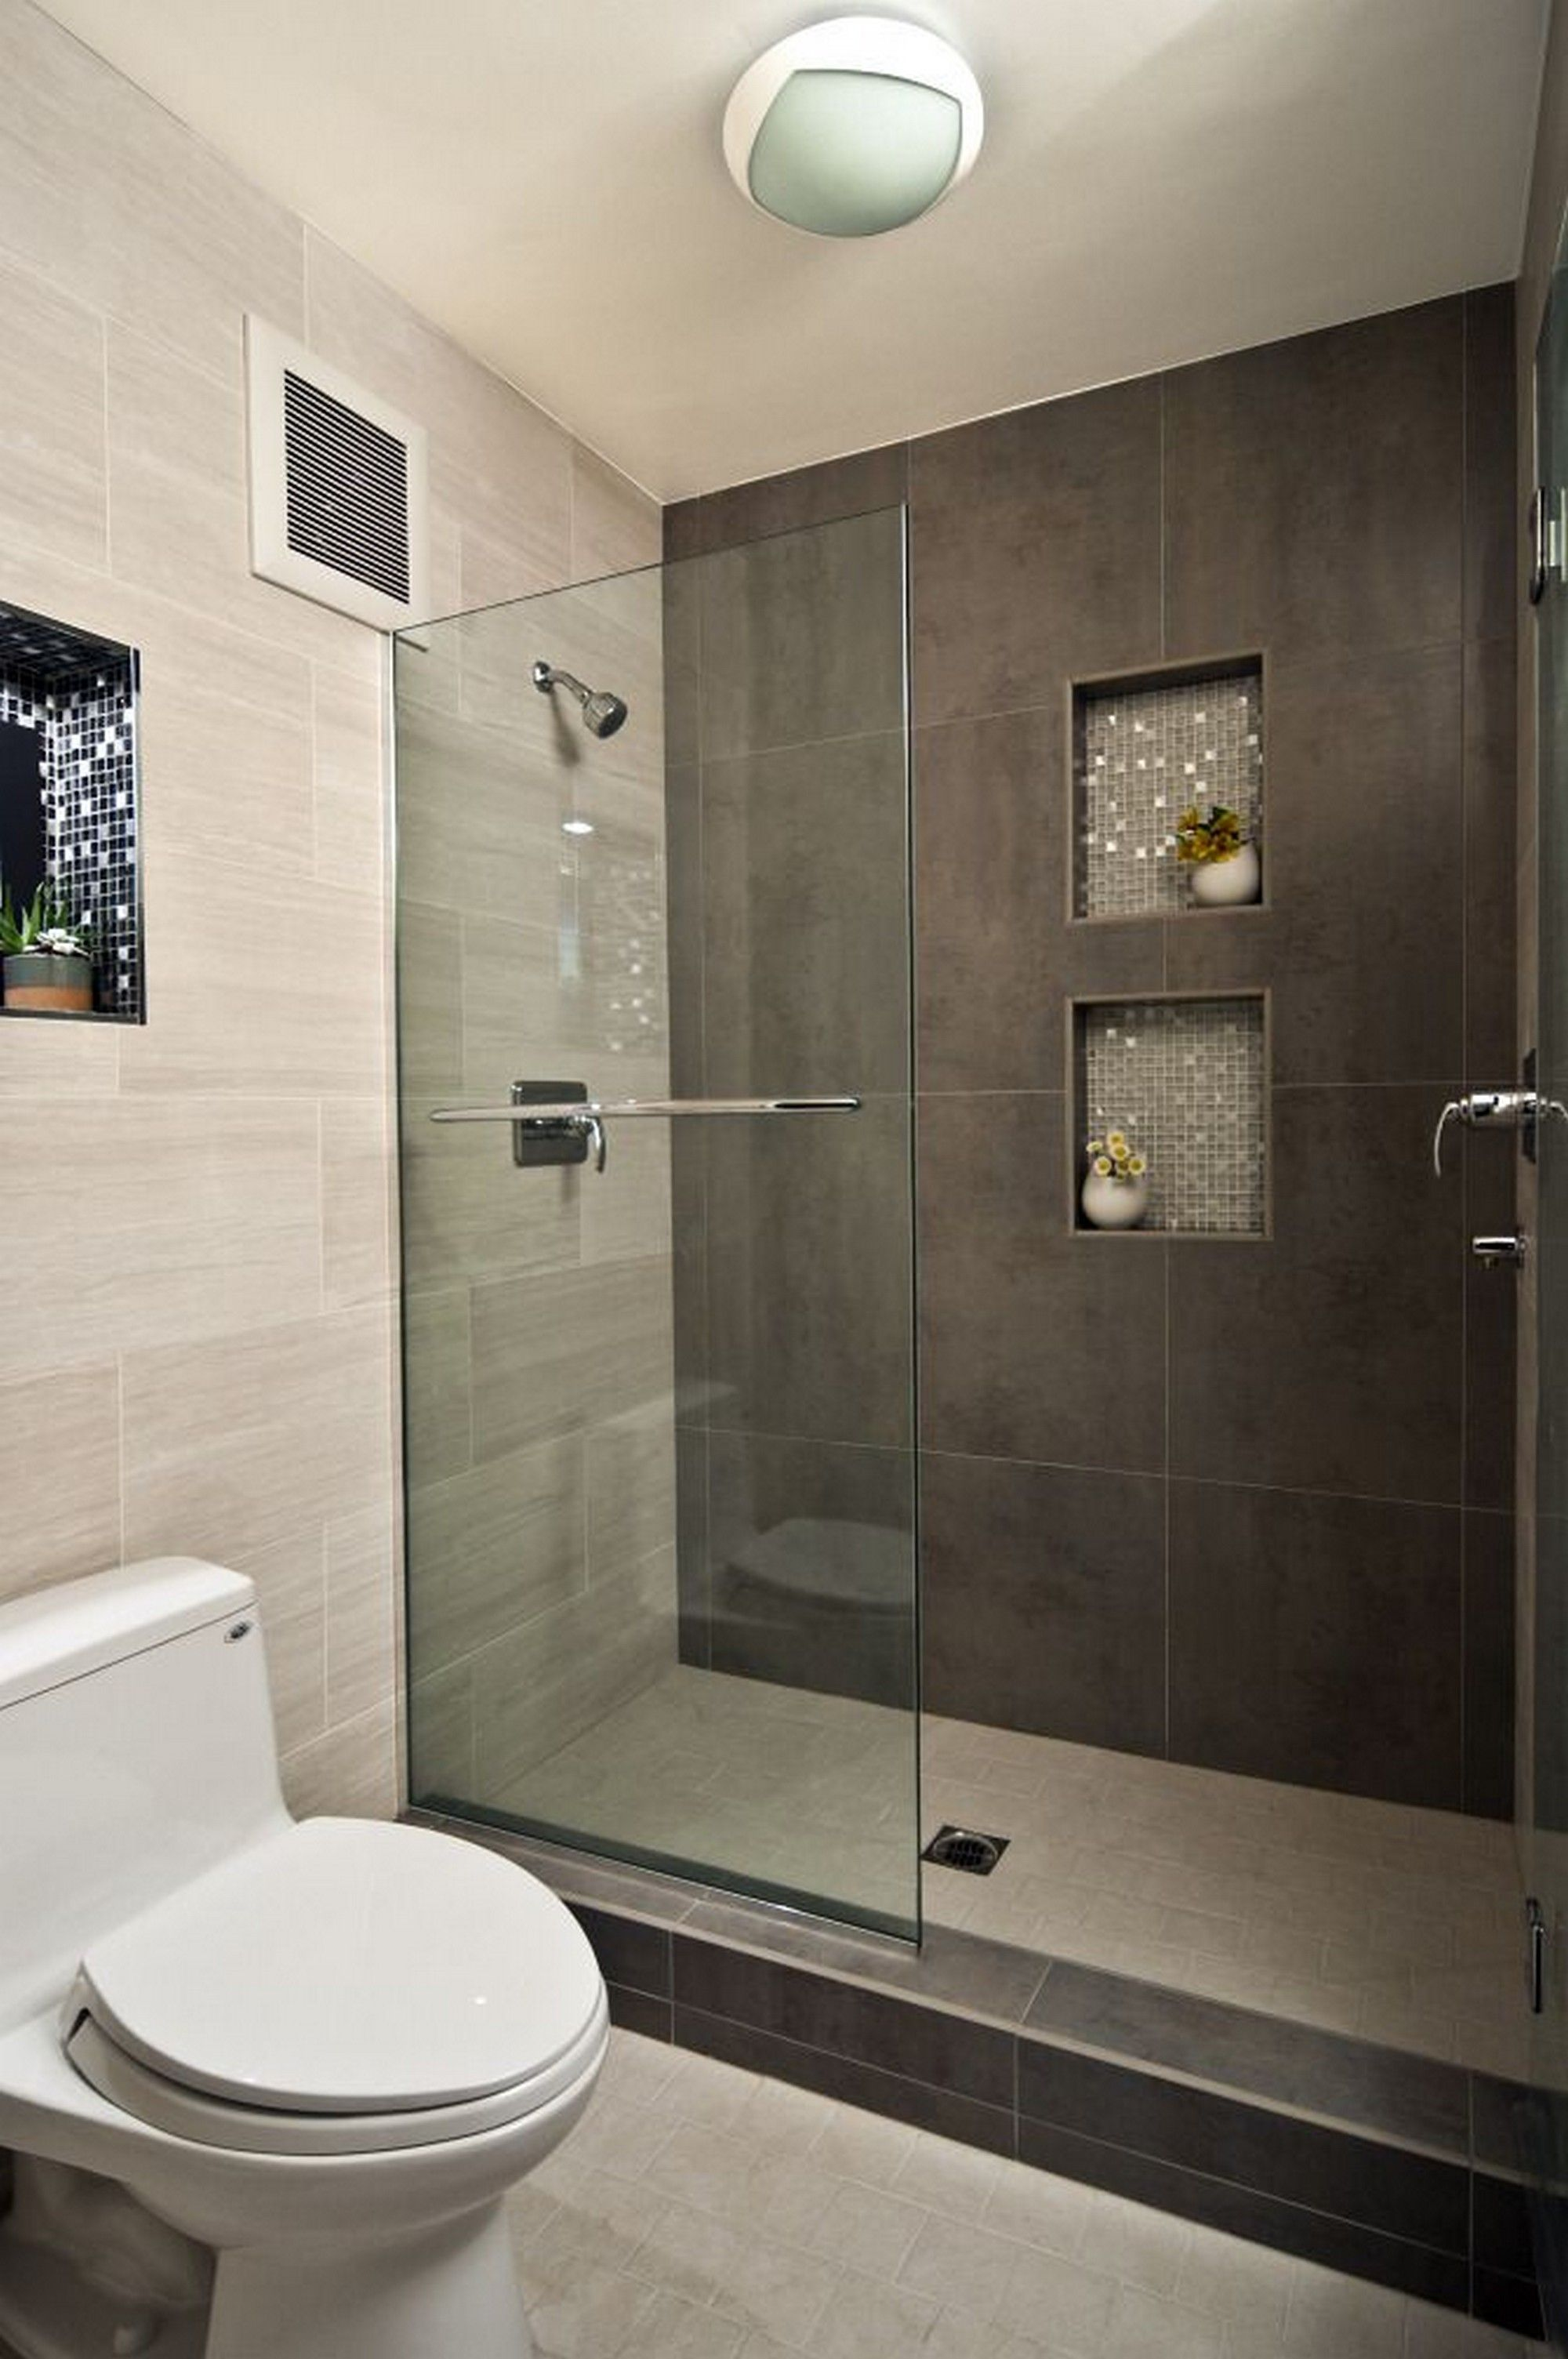 Modern Bathroom Design Ideas With Walk In Shower Pinterest Small - Examples of bathroom designs